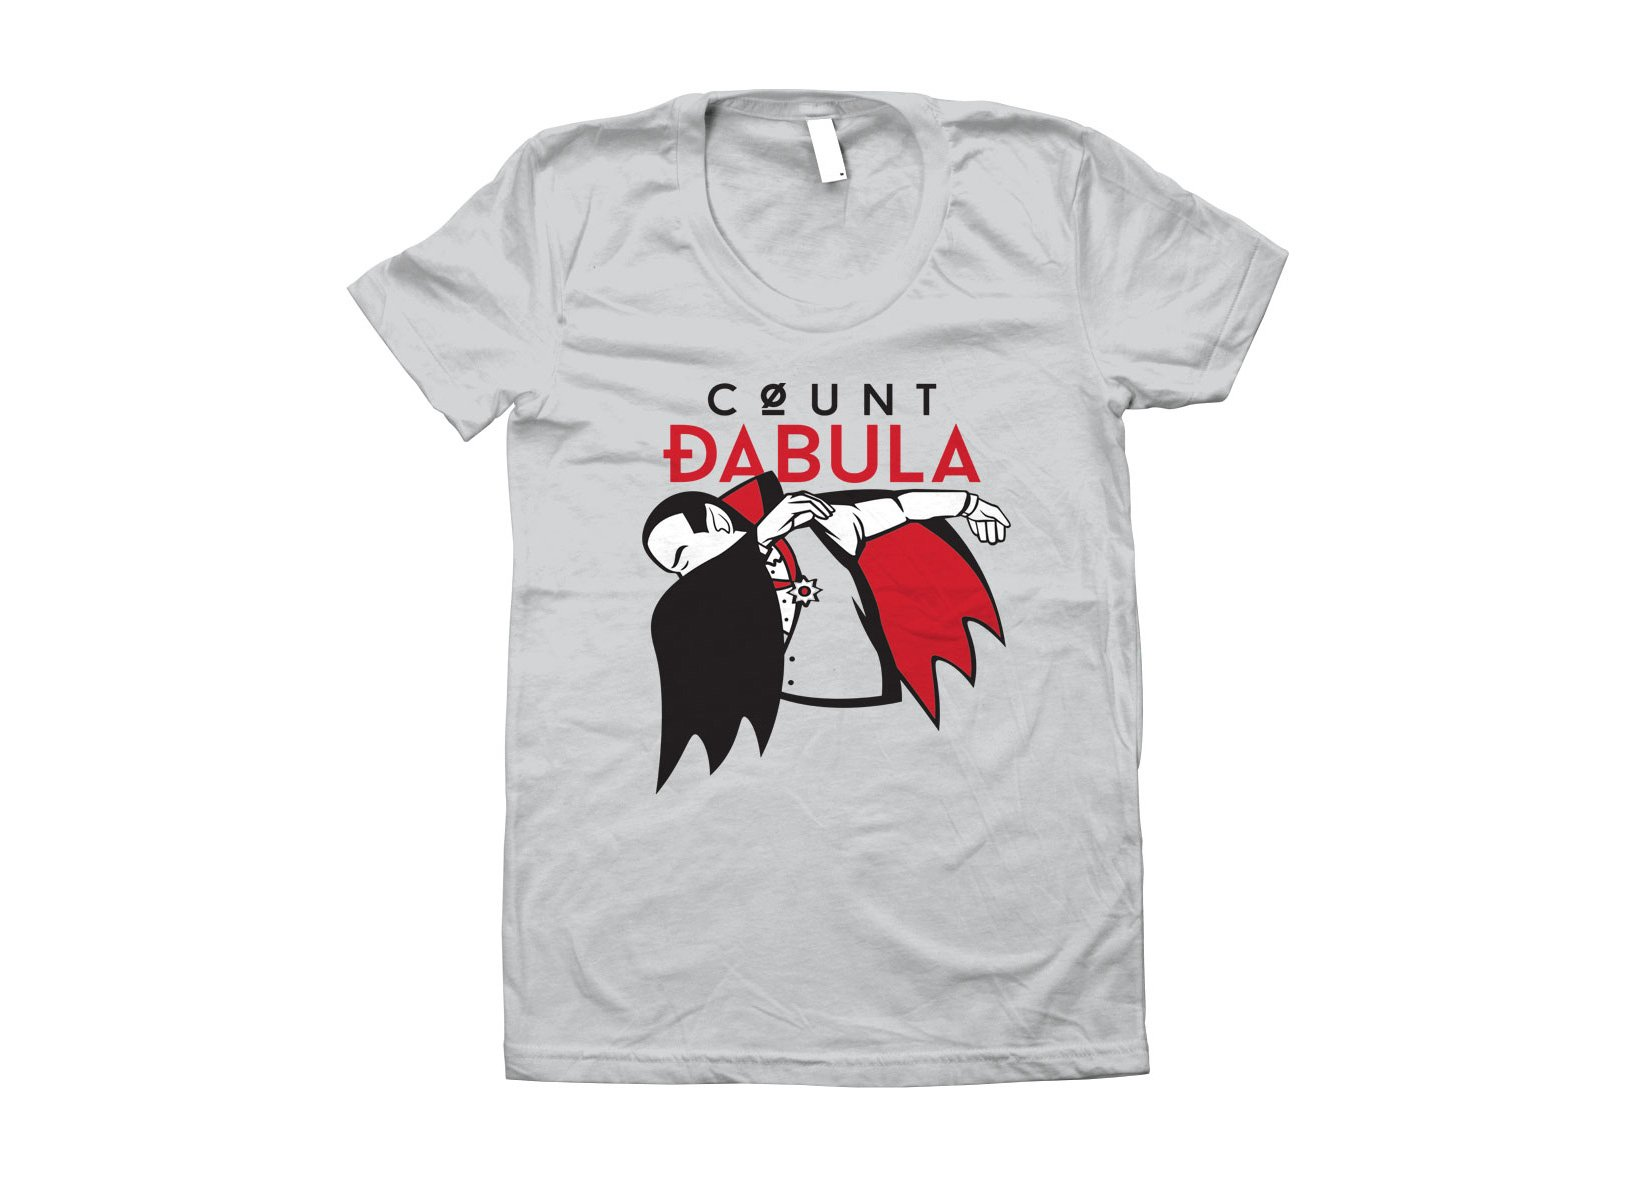 Count Dabula on Juniors T-Shirt